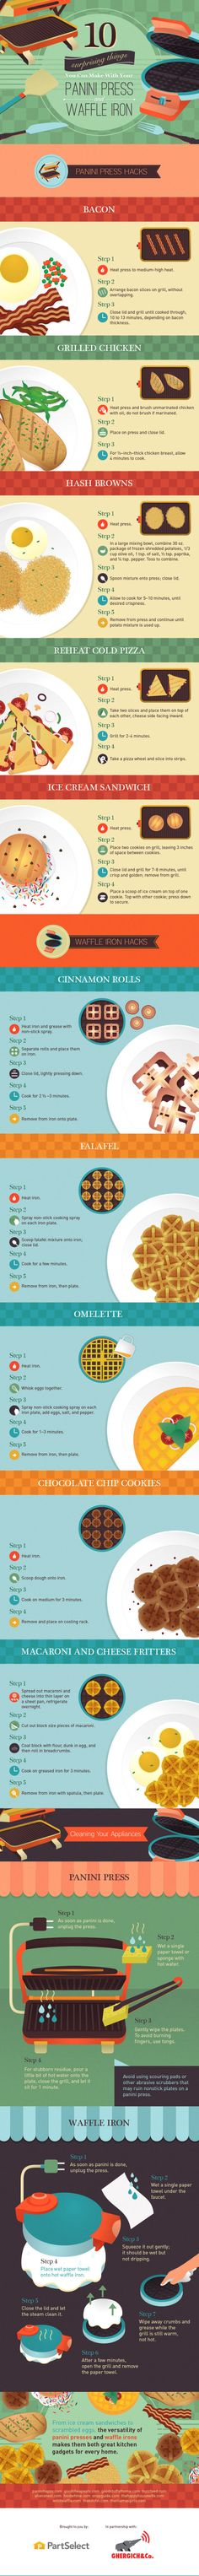 10 Creative Ways to Cook with Your Waffle Iron or Panini Press